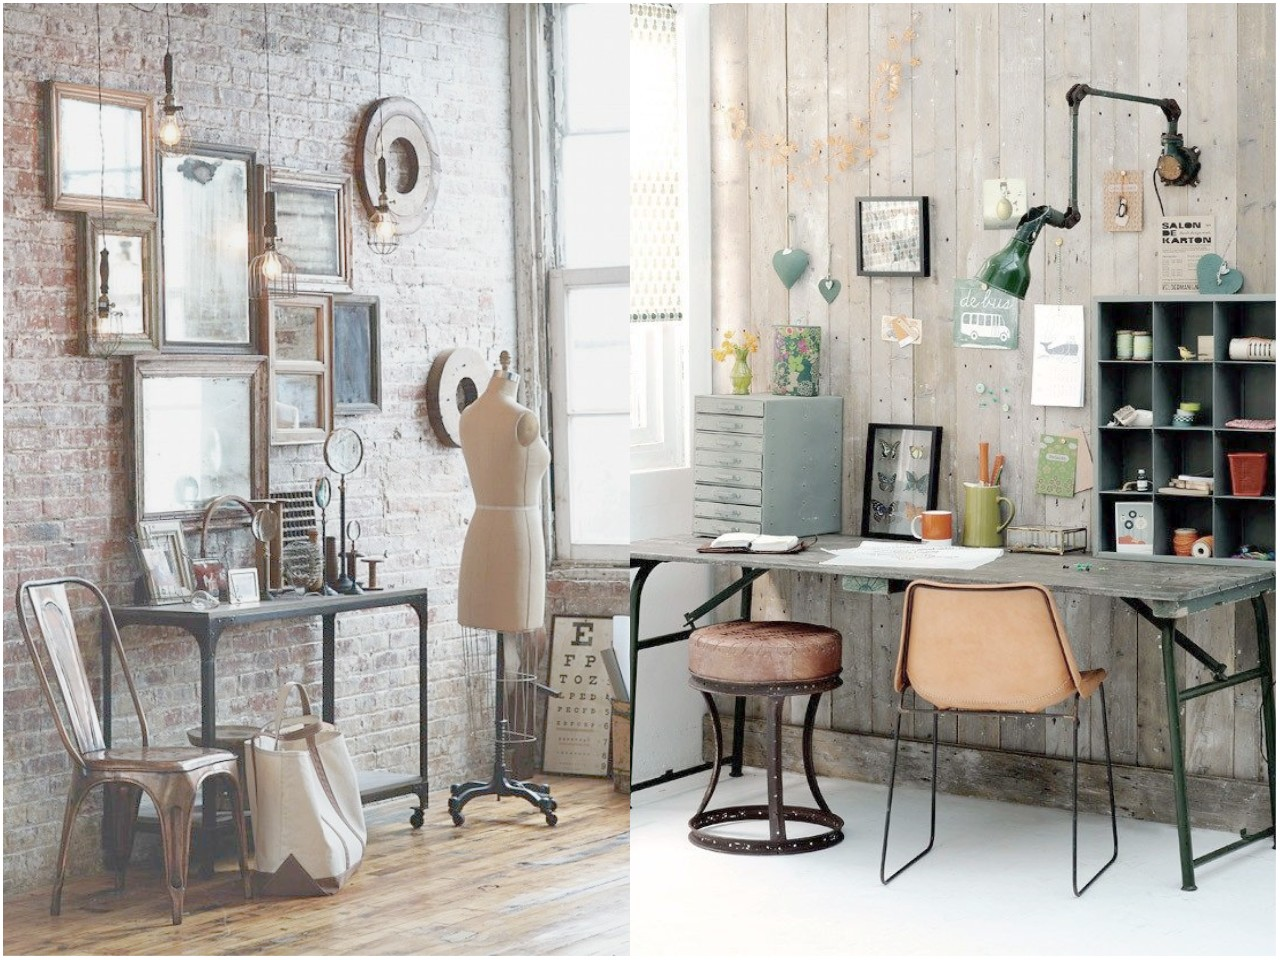 6 claves para una decoraci n vintage industrial for Decoracion estilo romantico vintage